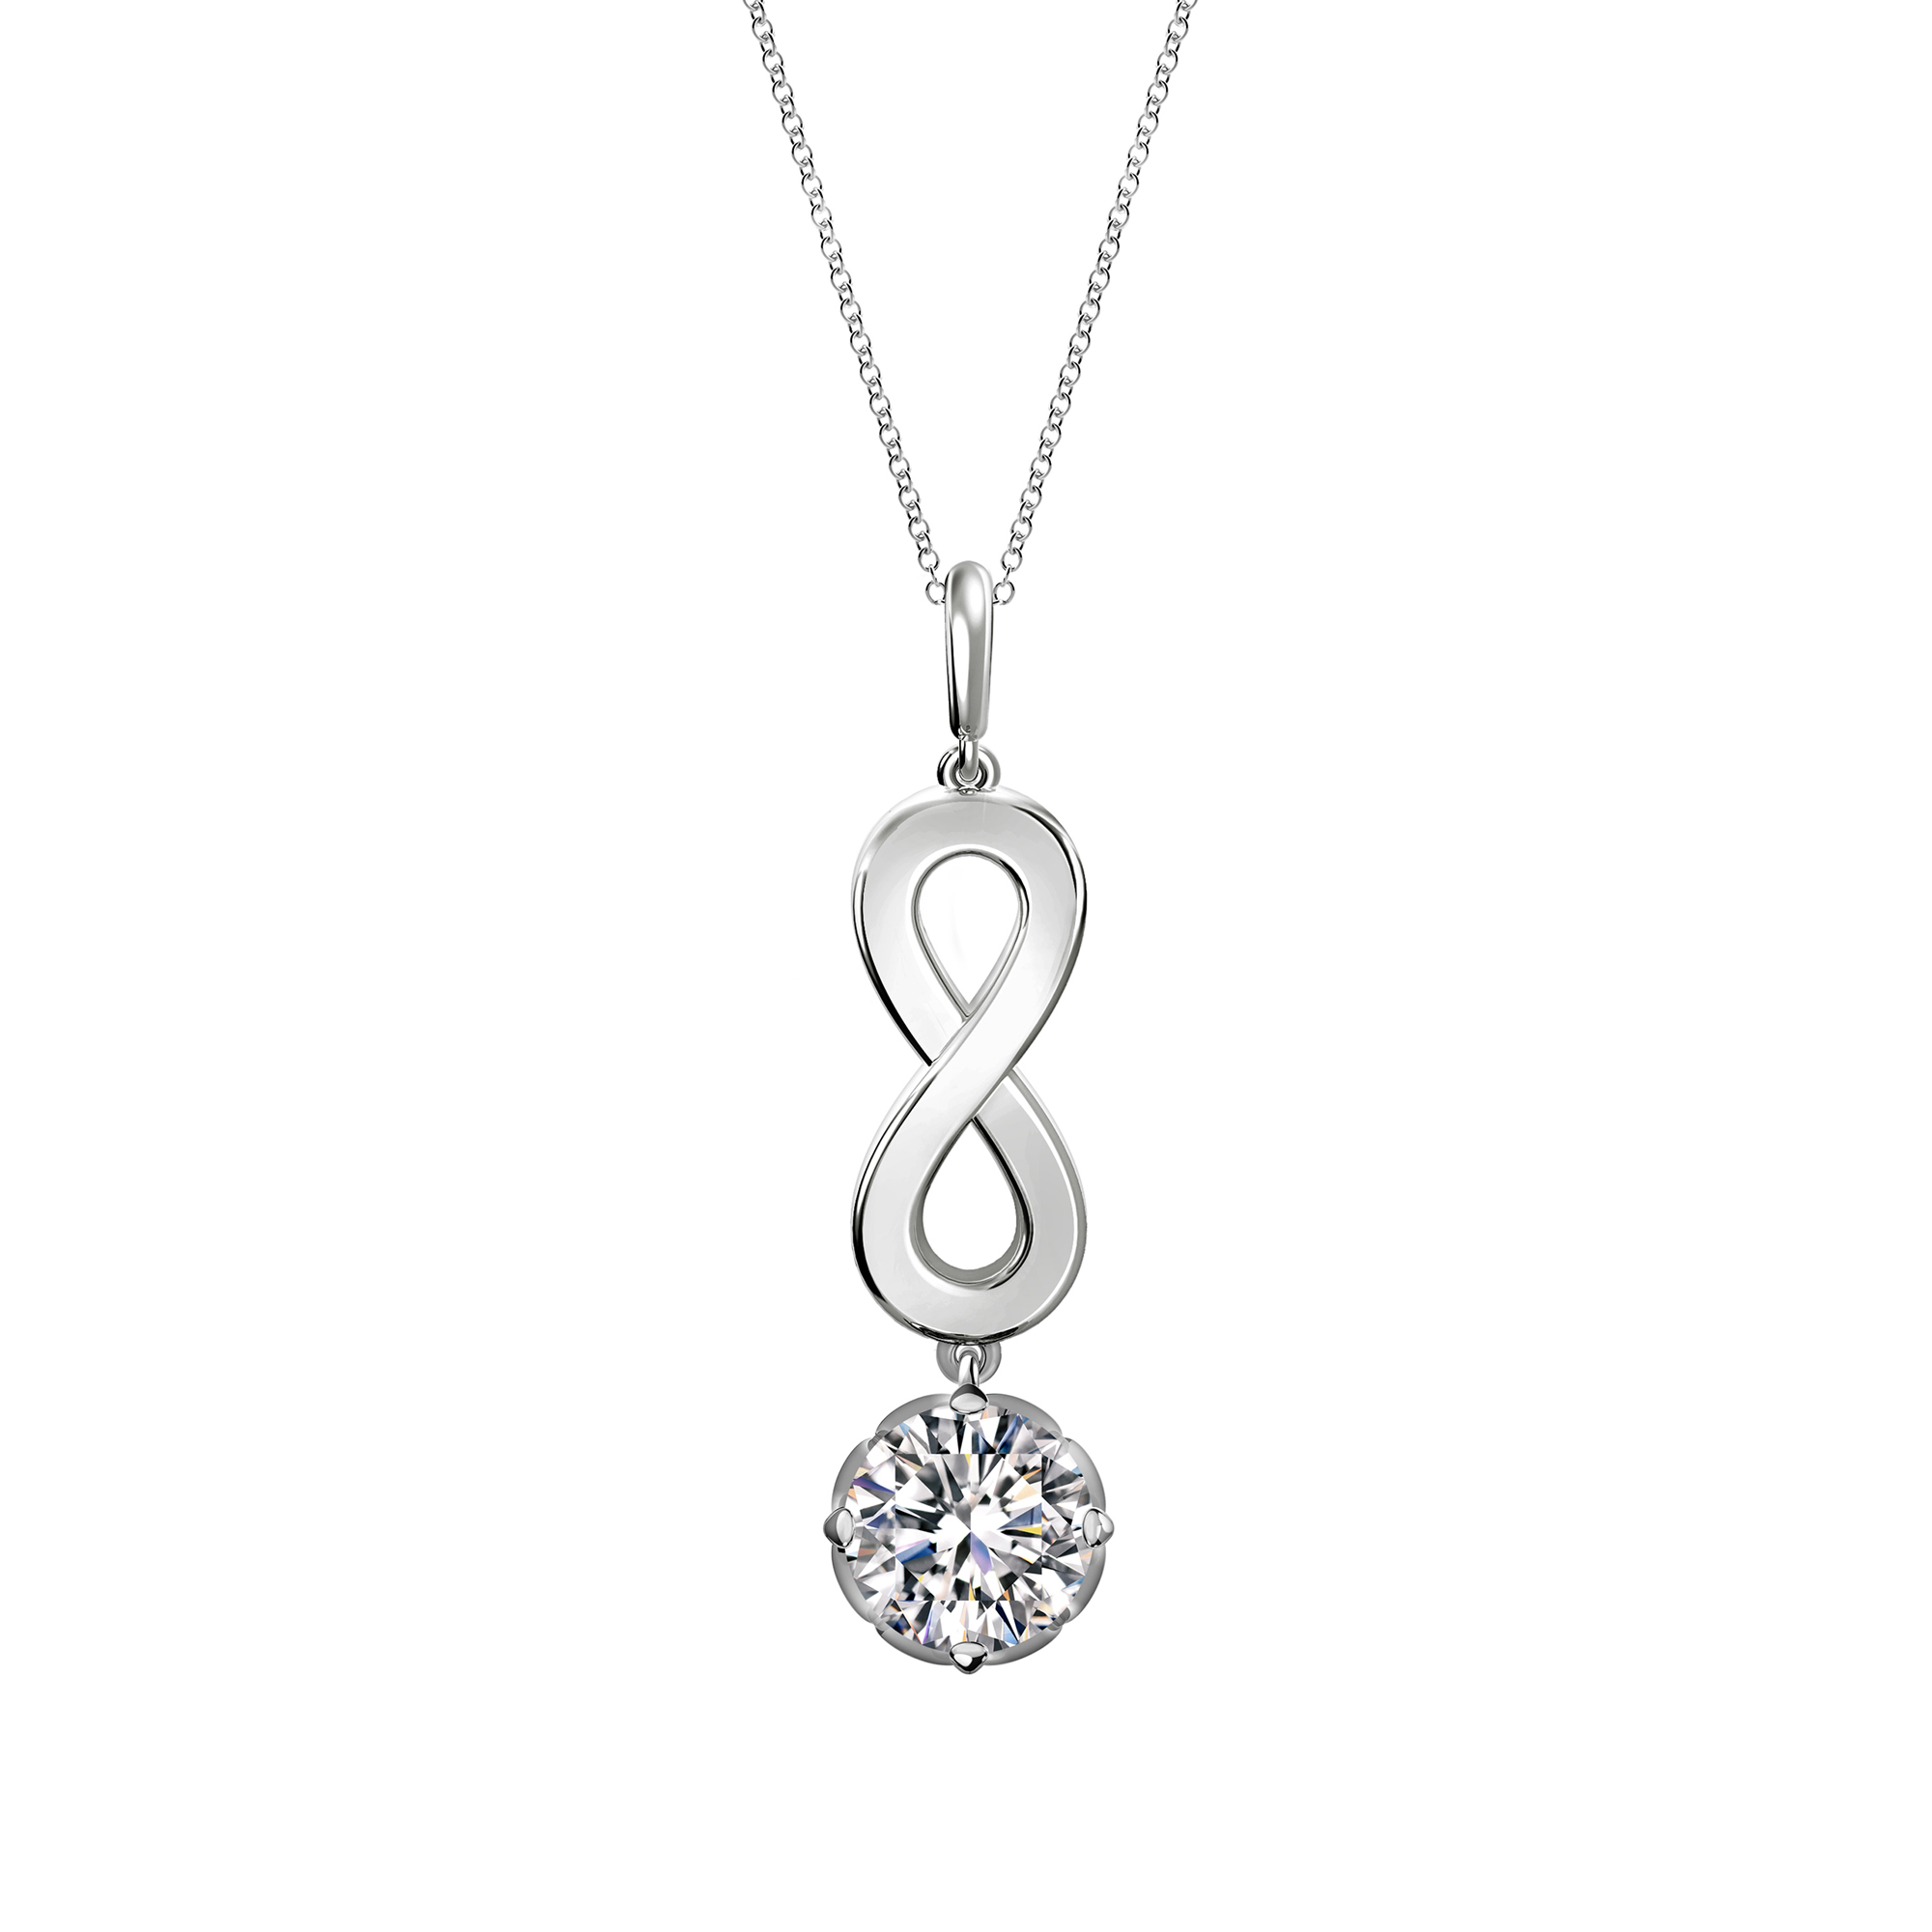 Forevermark Endlea Necklace